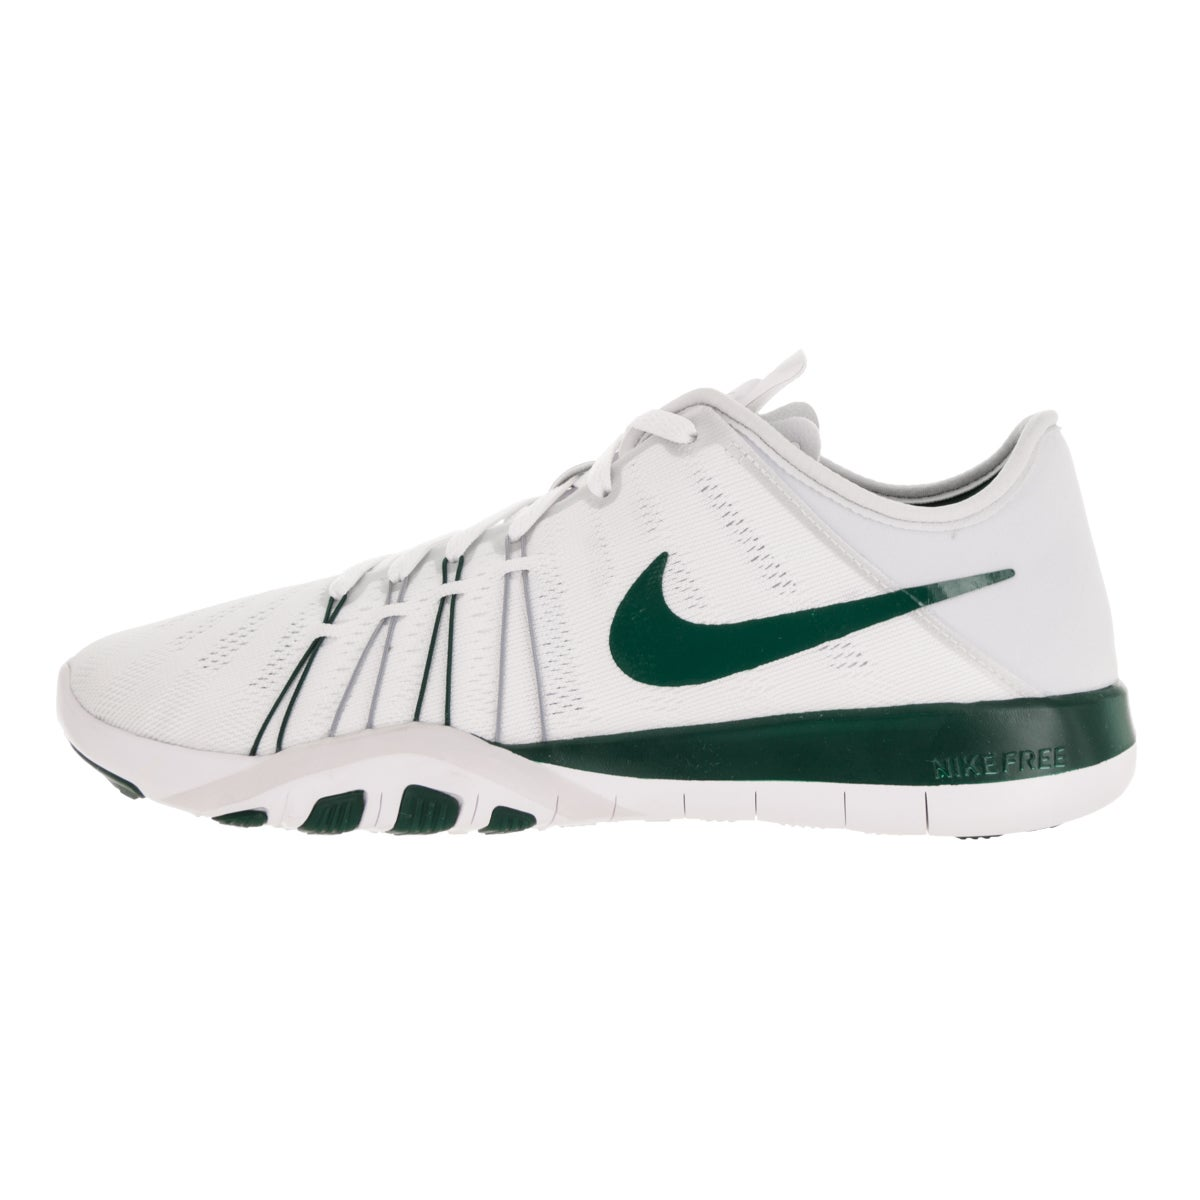 b4f917594f9f Shop Nike Women s Free Tr 6 White Gorge Green Pure Platinum Training Shoes  - Free Shipping Today - Overstock.com - 13344064